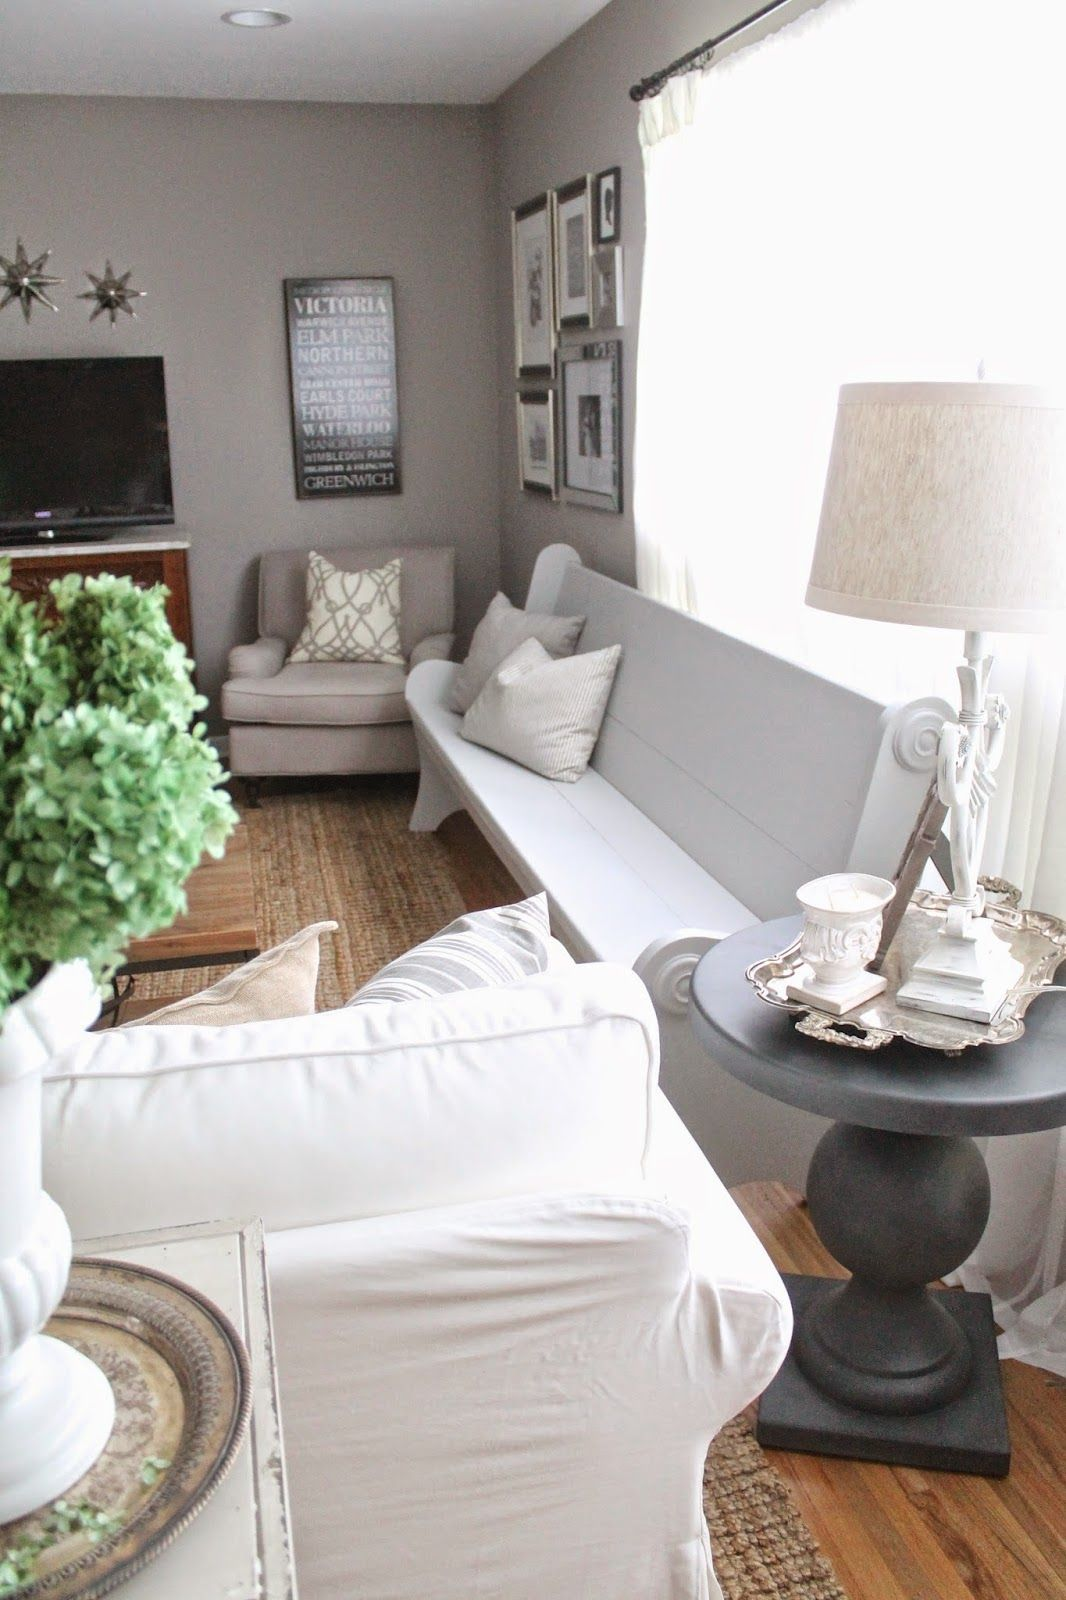 Painted Church Pew | Pinterest | White paints, Churches and Living rooms